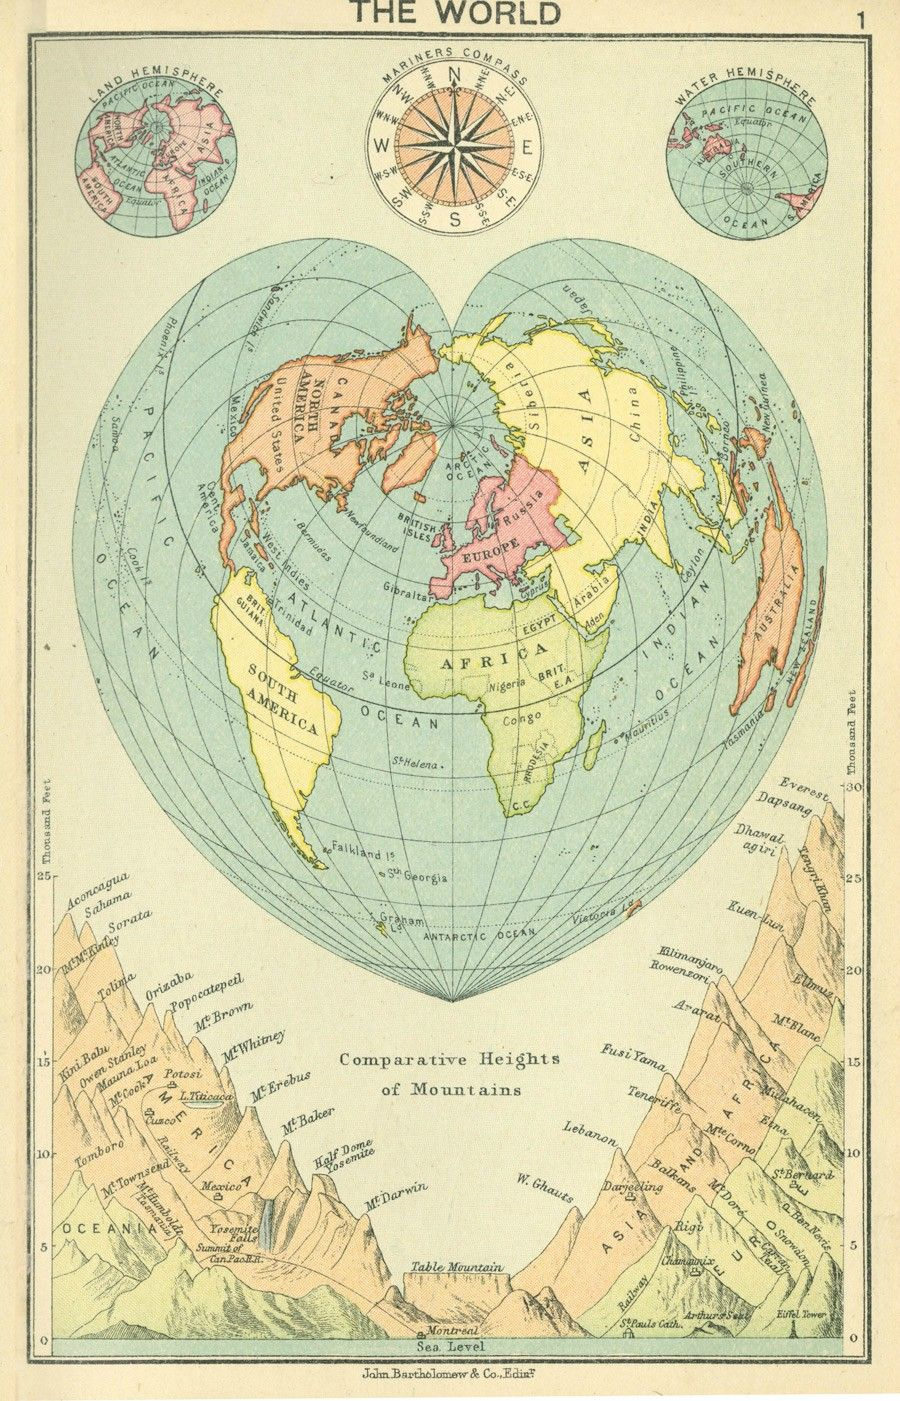 hearth shaped world this enchanting page is from the petite pocket atlas of the world by john bartholomew the uncommon stabius werner projection creates a